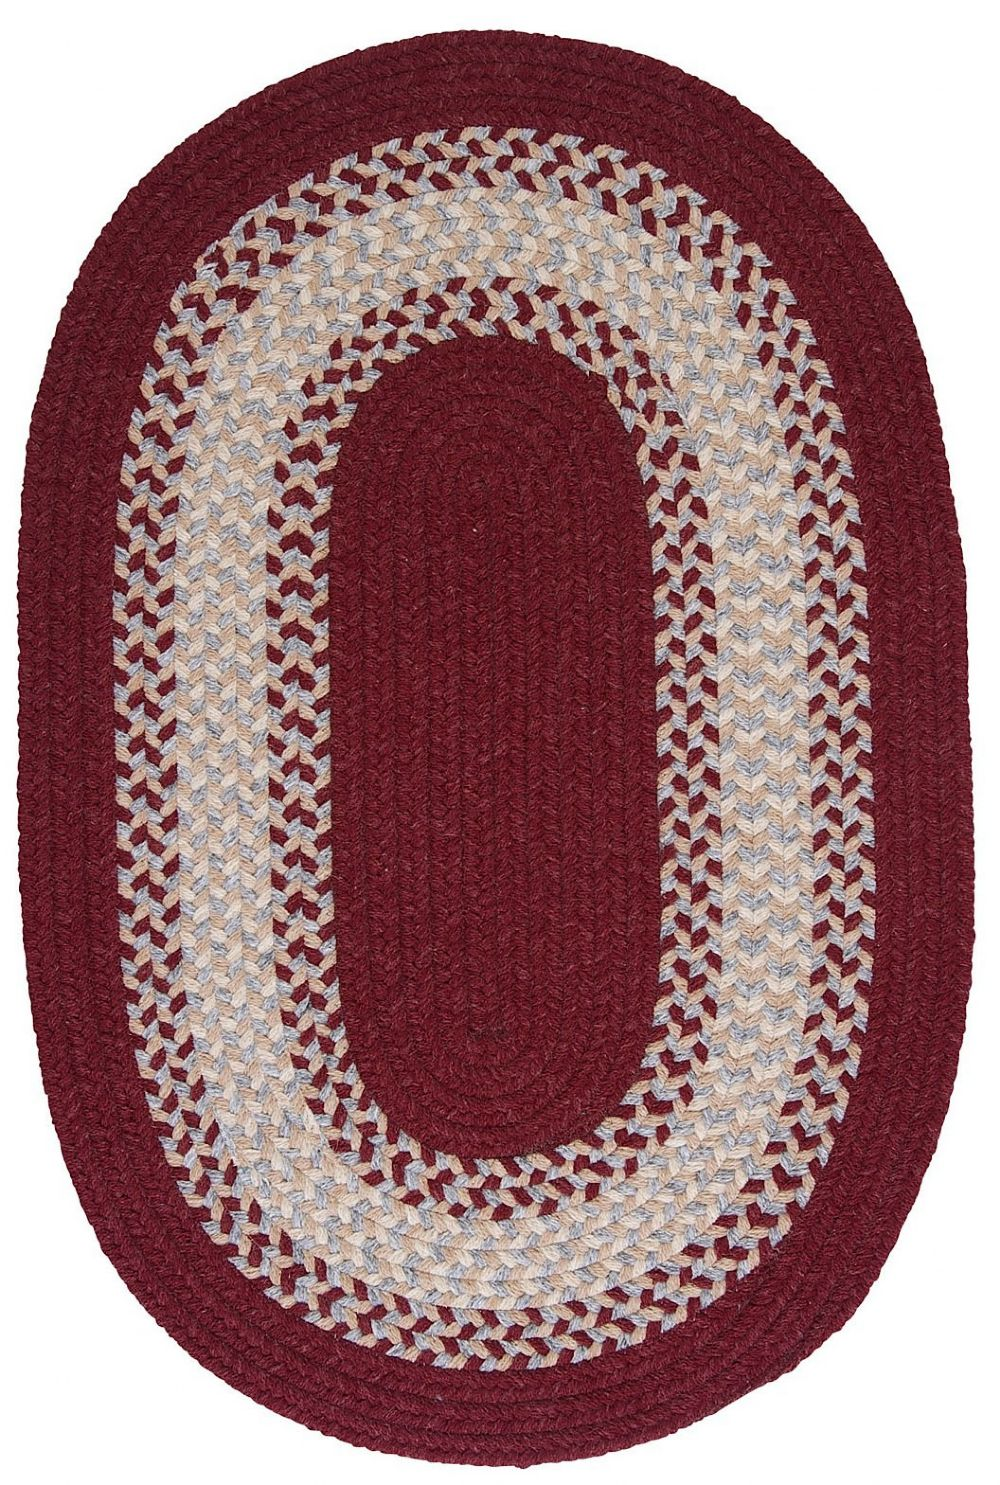 colonial mills north ridge braided area rug collection